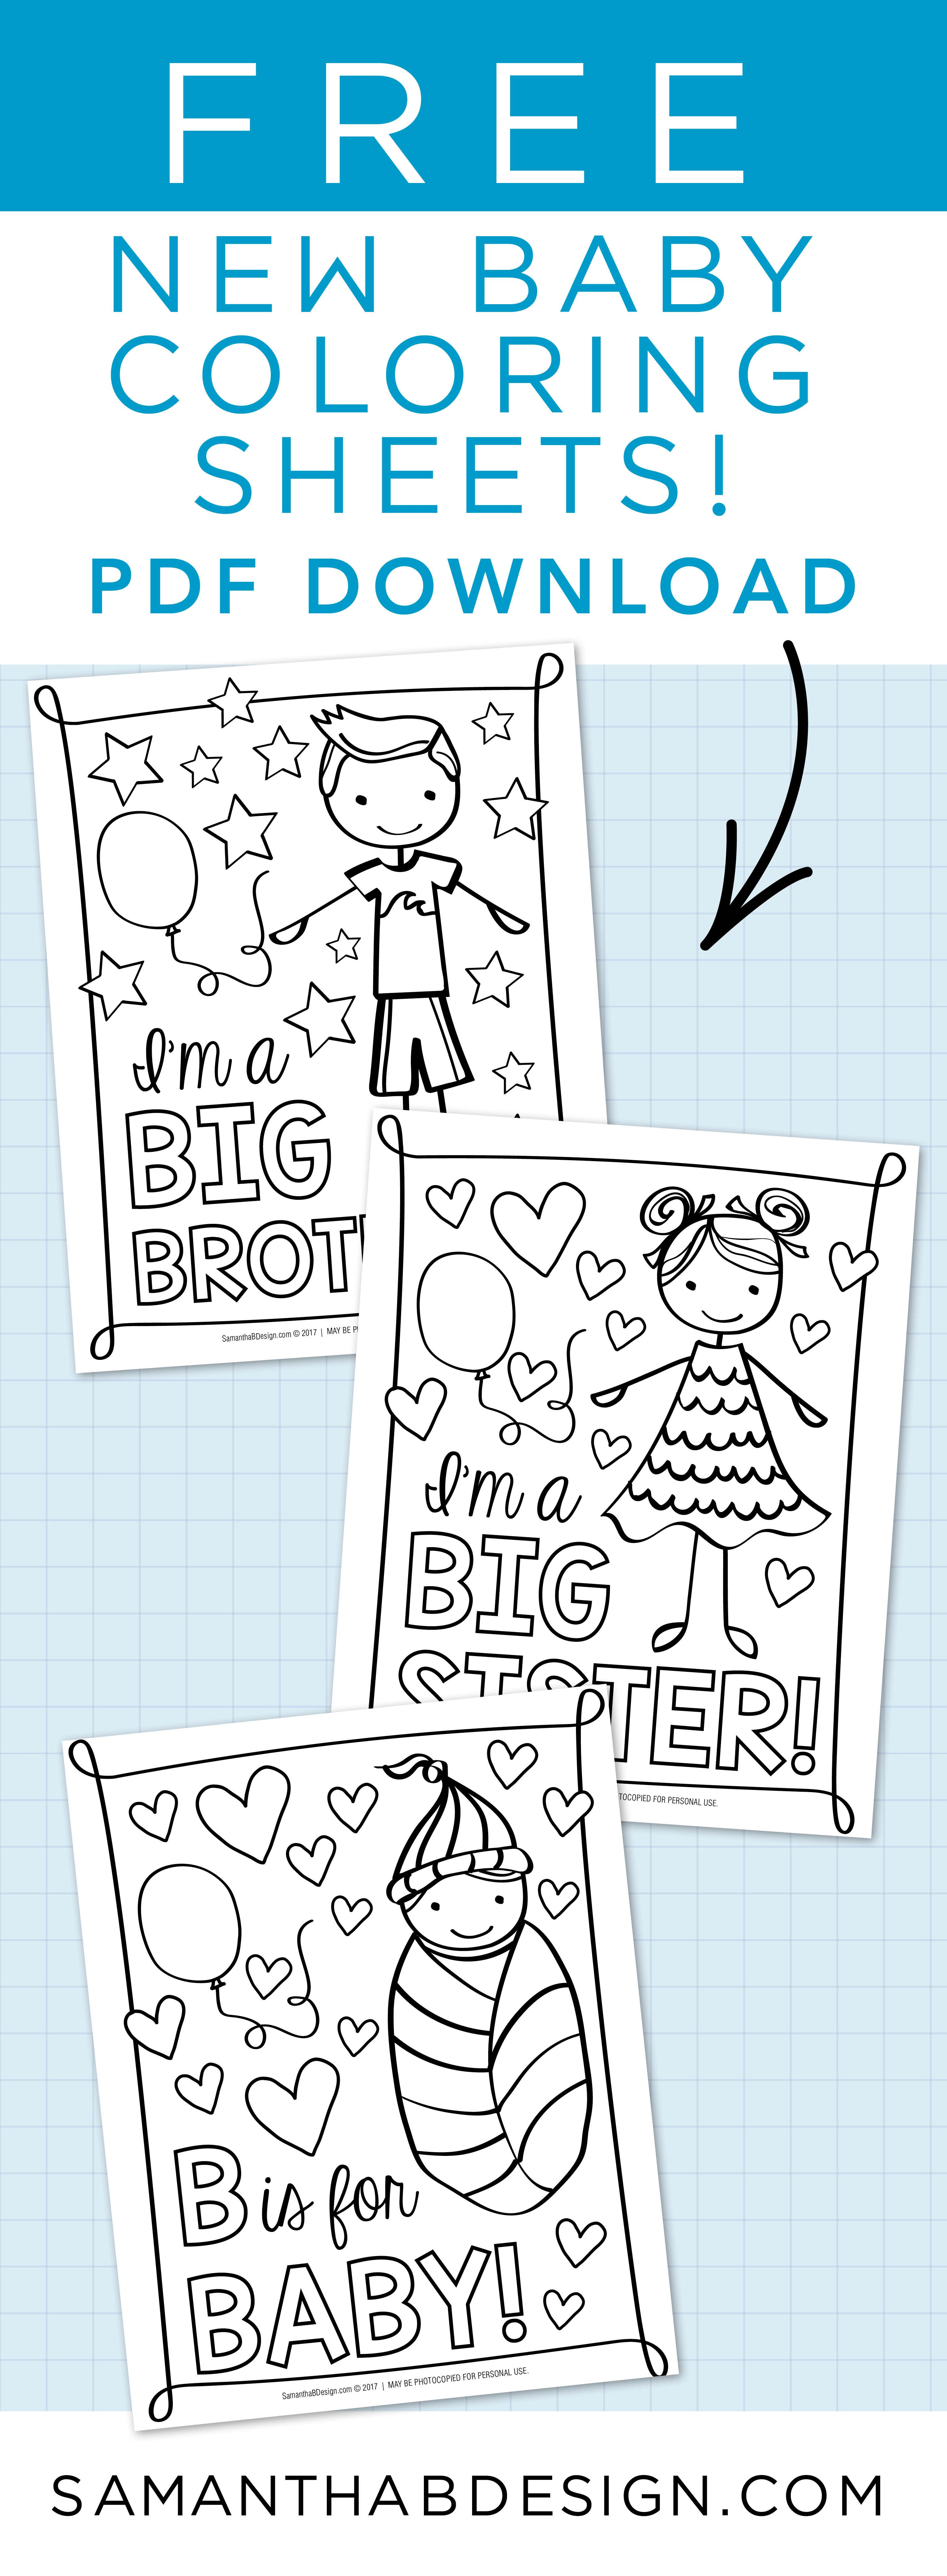 Free Coloring Sheets For Big Sister Big Brother Adorable Great For Baby Shower Or T For